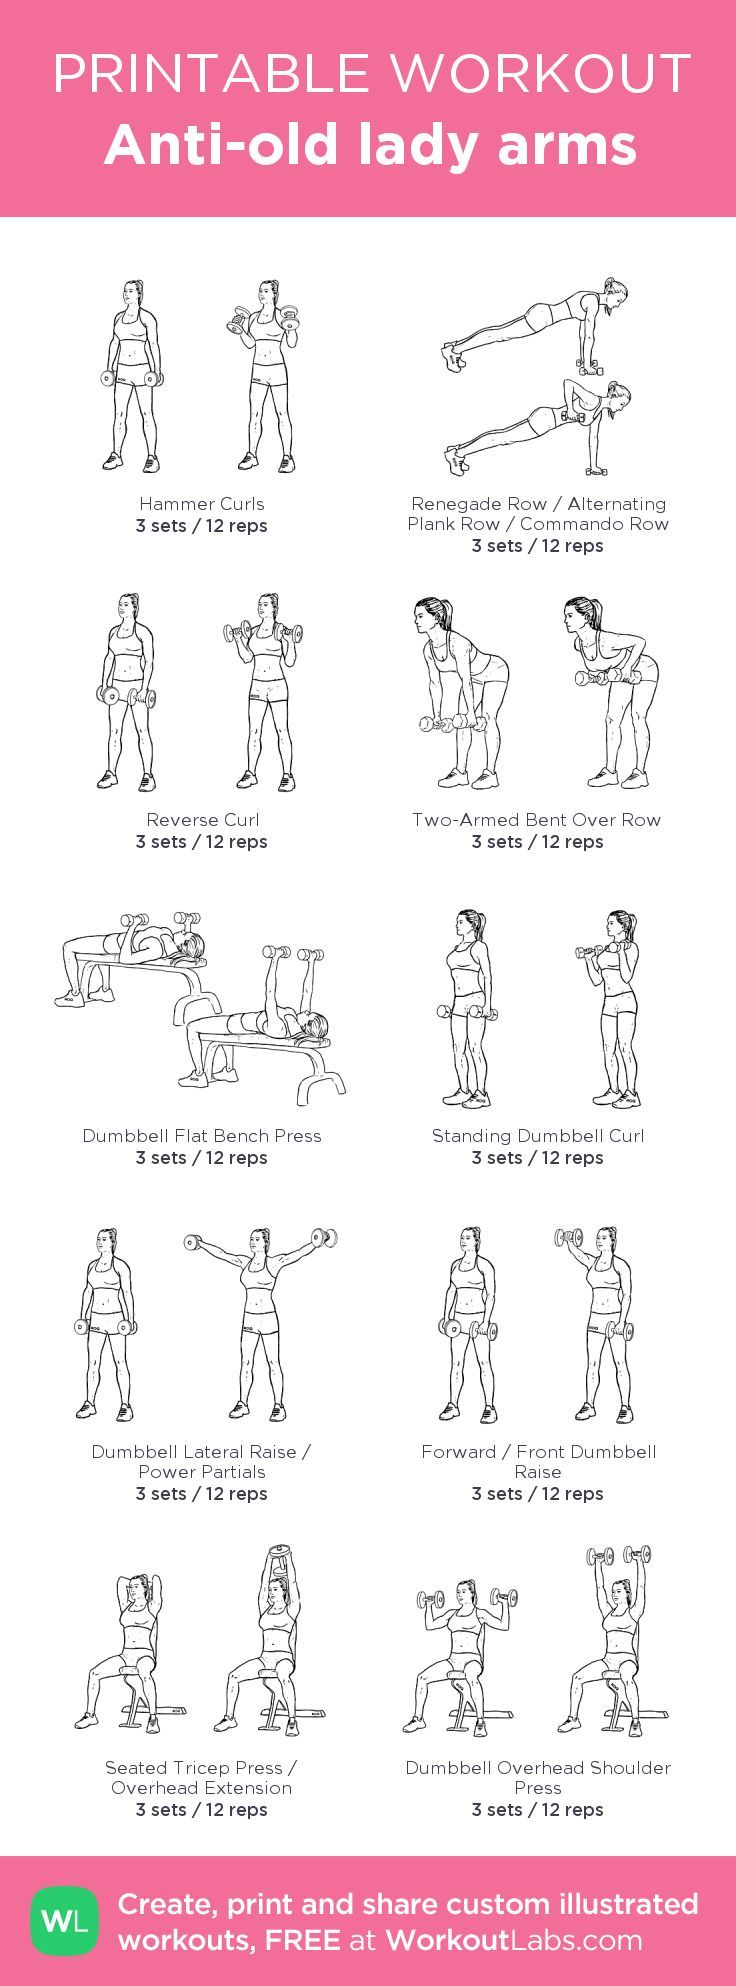 Anti-old lady arms:my visual workout created at http://WorkoutLabs.com • Click through to customize and download as a FREE PDF! #customworkout